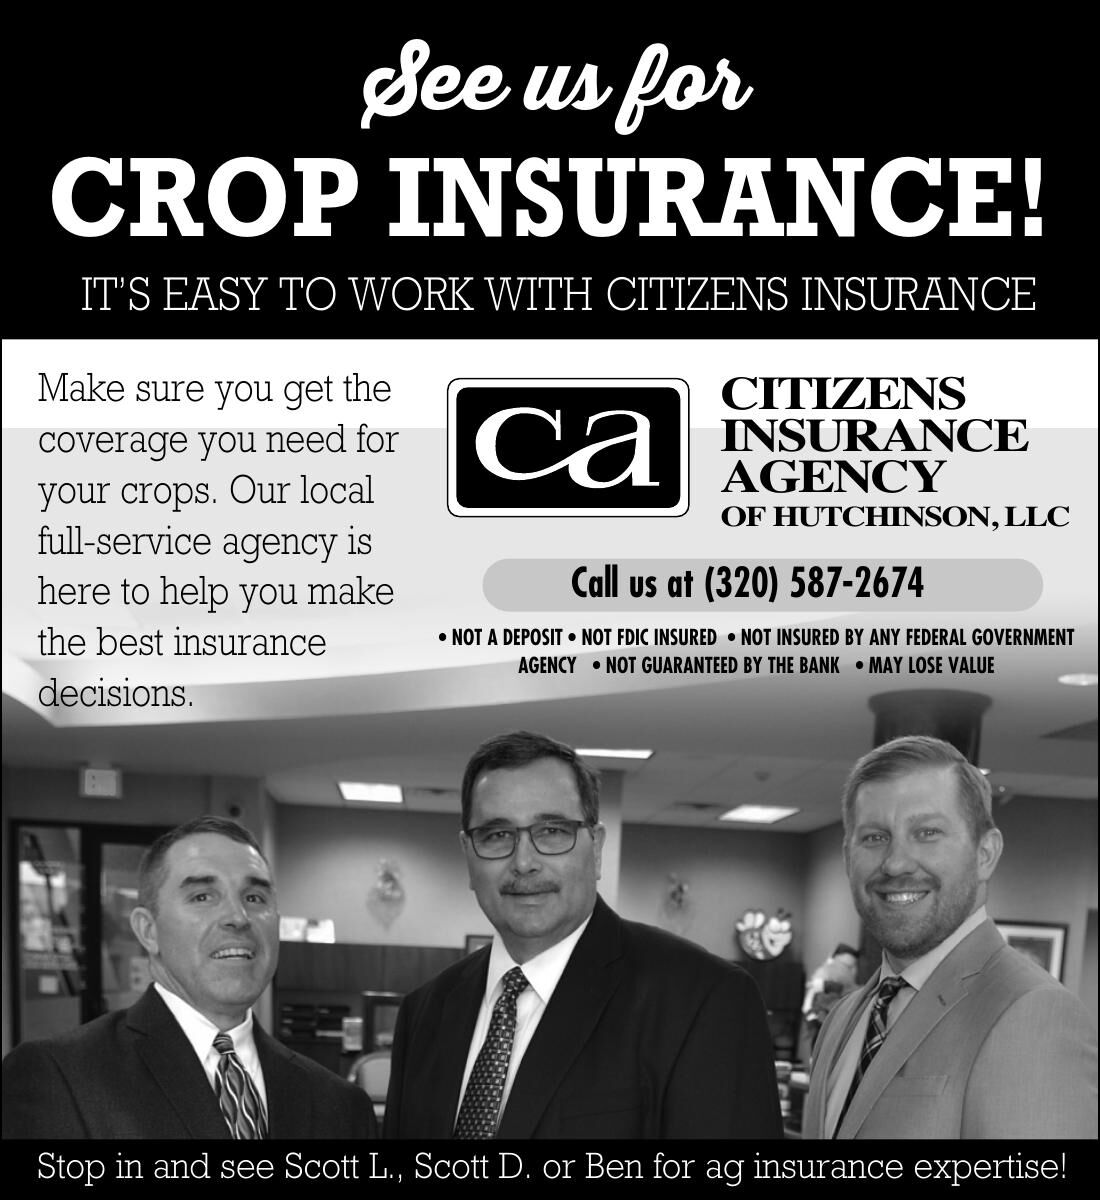 See us for CROP INSURANCE! IT'S EASY